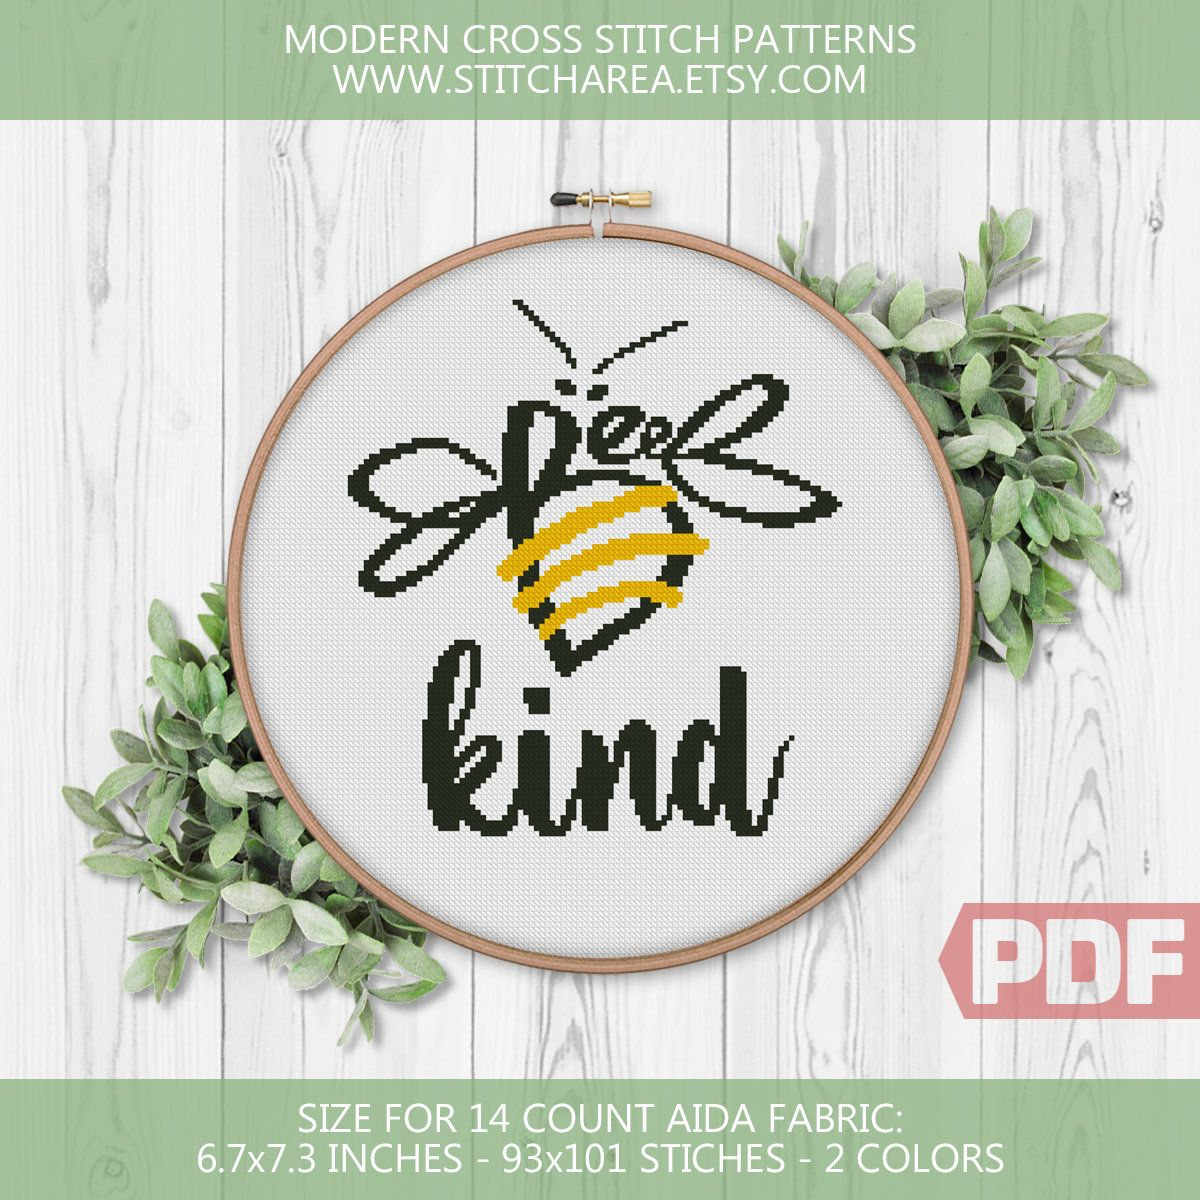 Bee Kind, Cross Stitch Pattern, Cute Bumble Bee, Honey Funny Nature Bug Animal, Modern Art Fan Decor